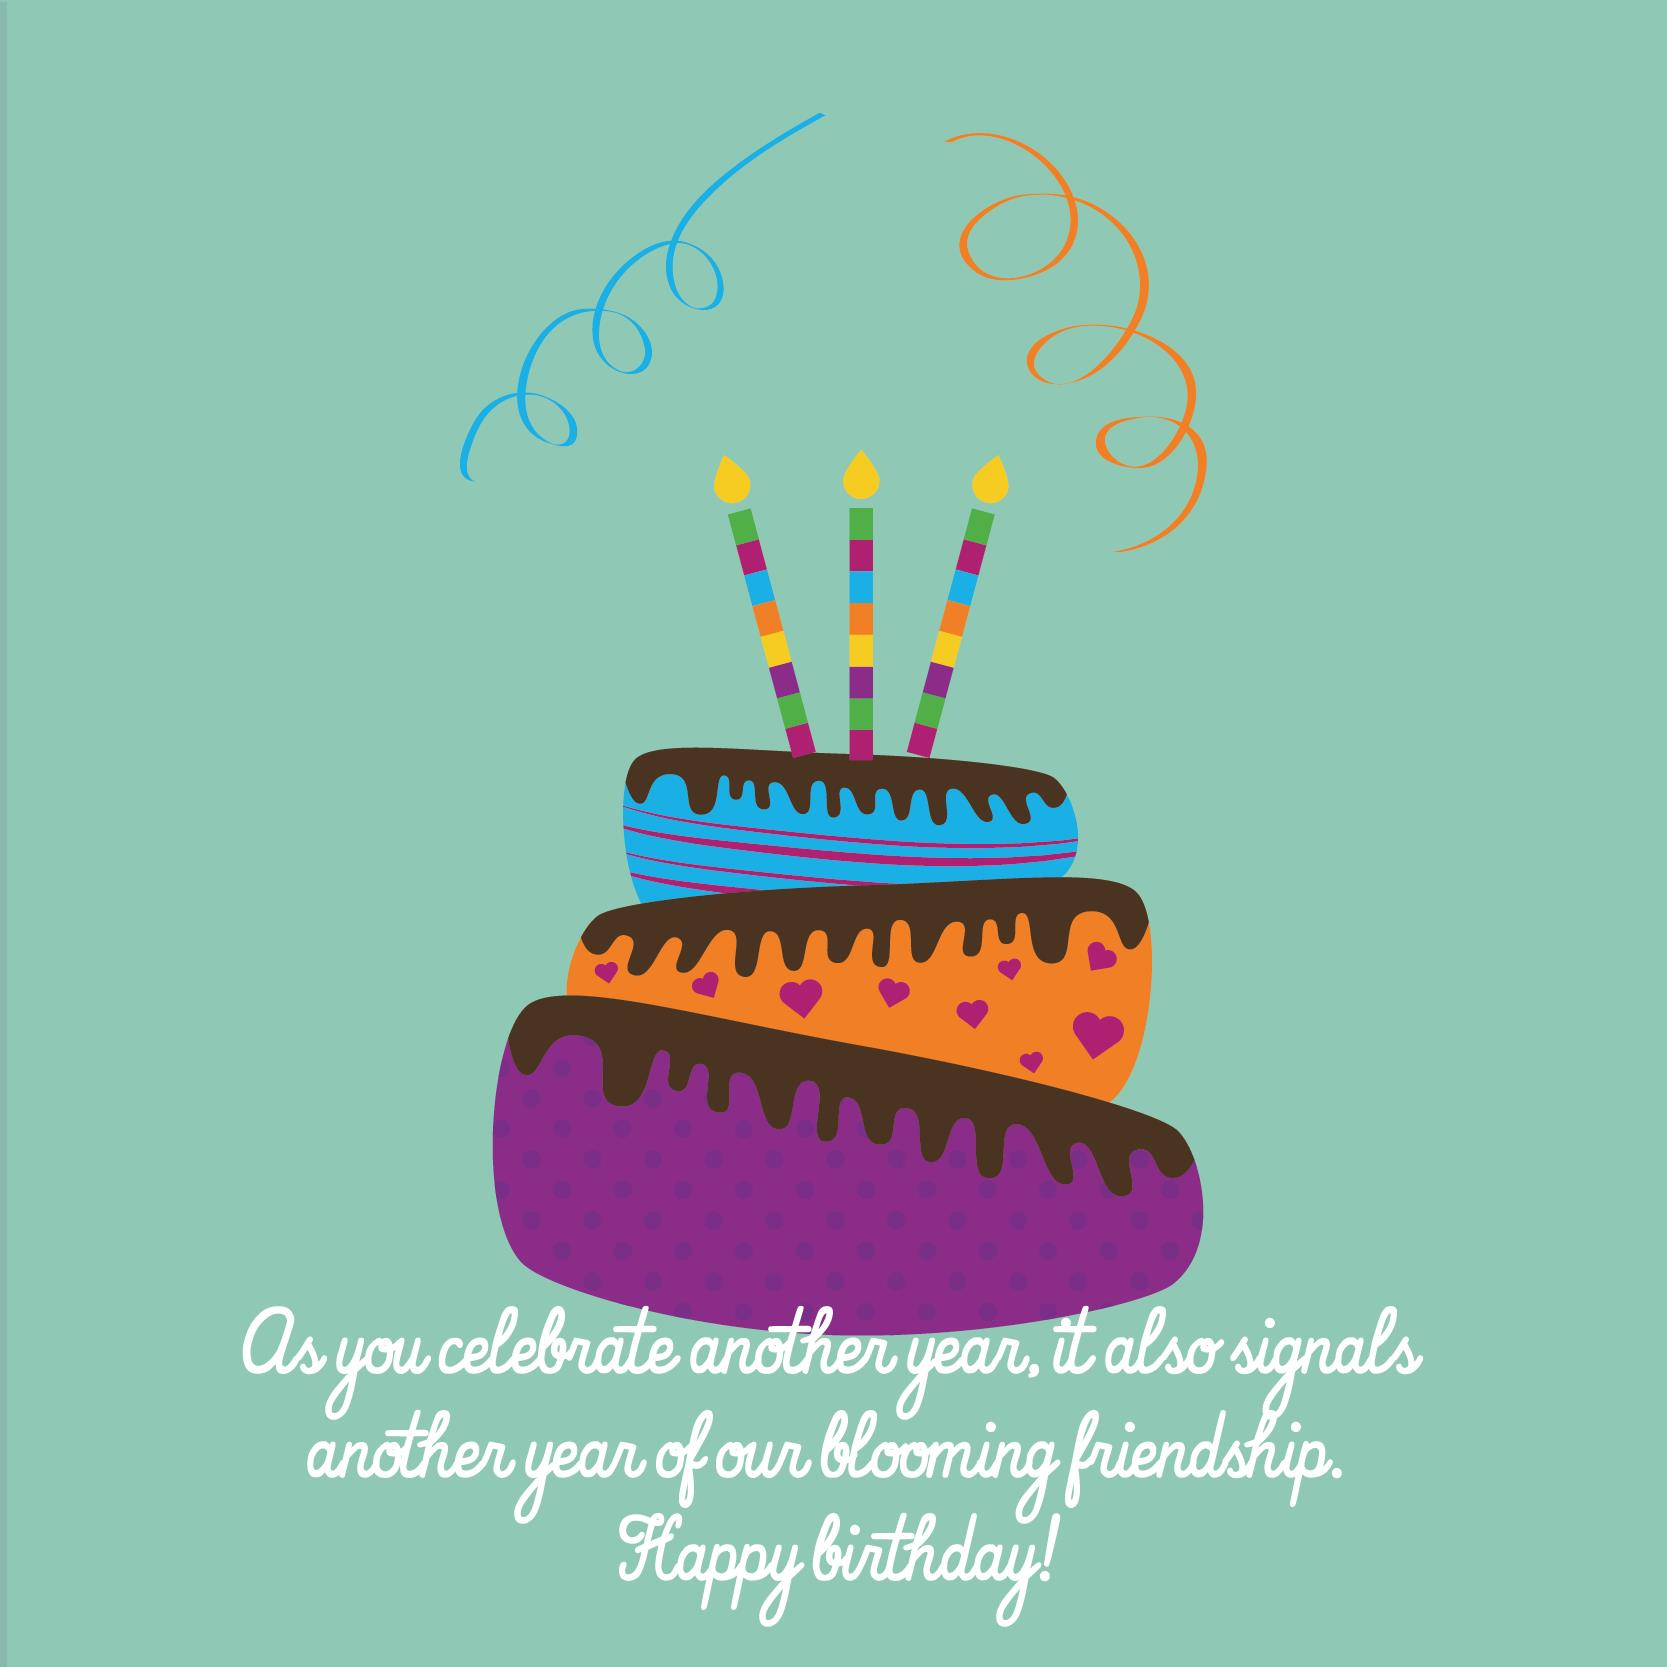 birthday-wishes-for-a-good-friend-05